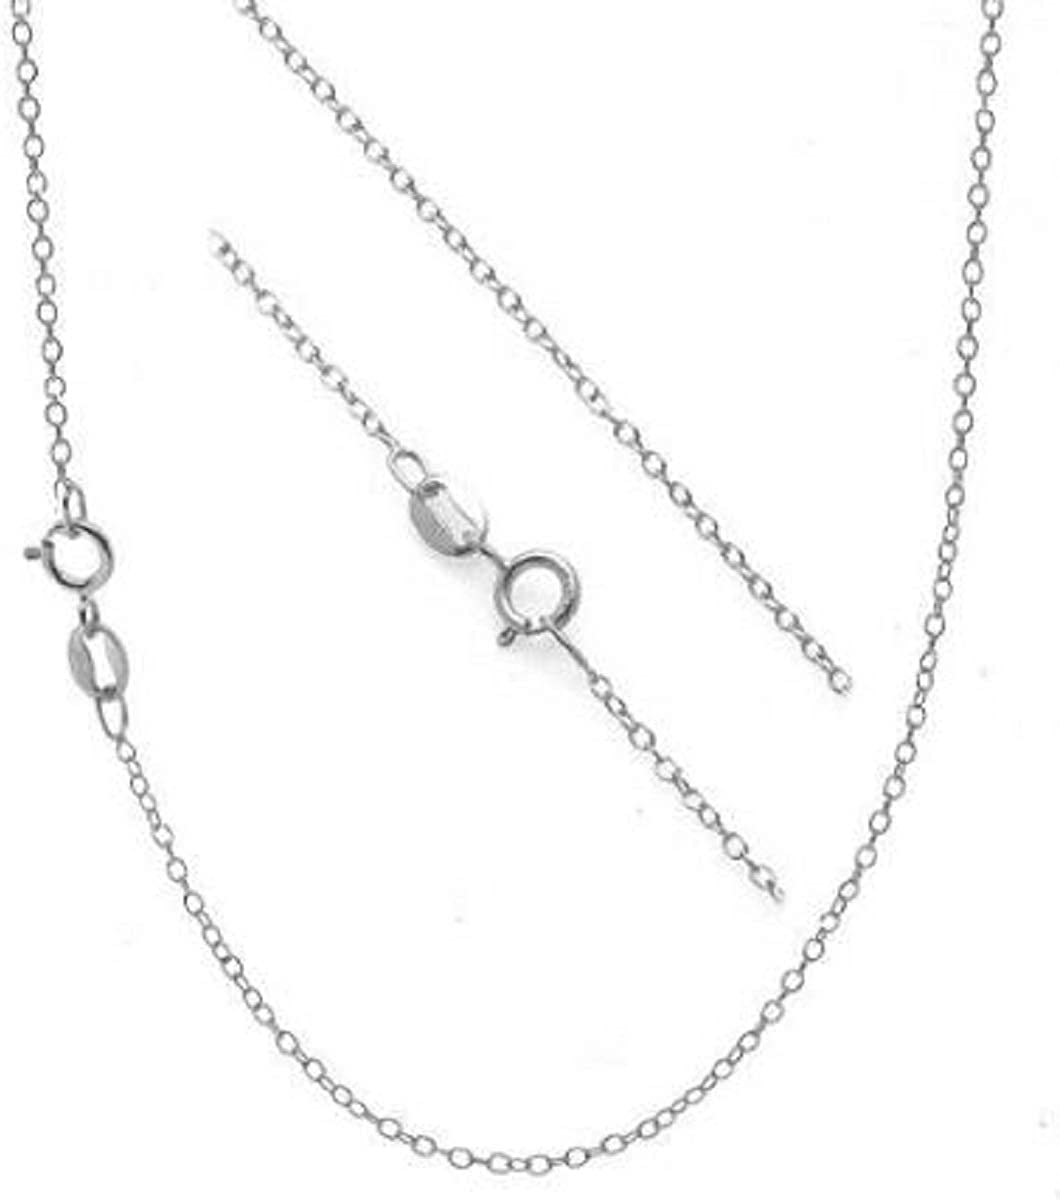 Preciashopping .925 Sterling Silver 1mm Thin Cable Chain Necklace